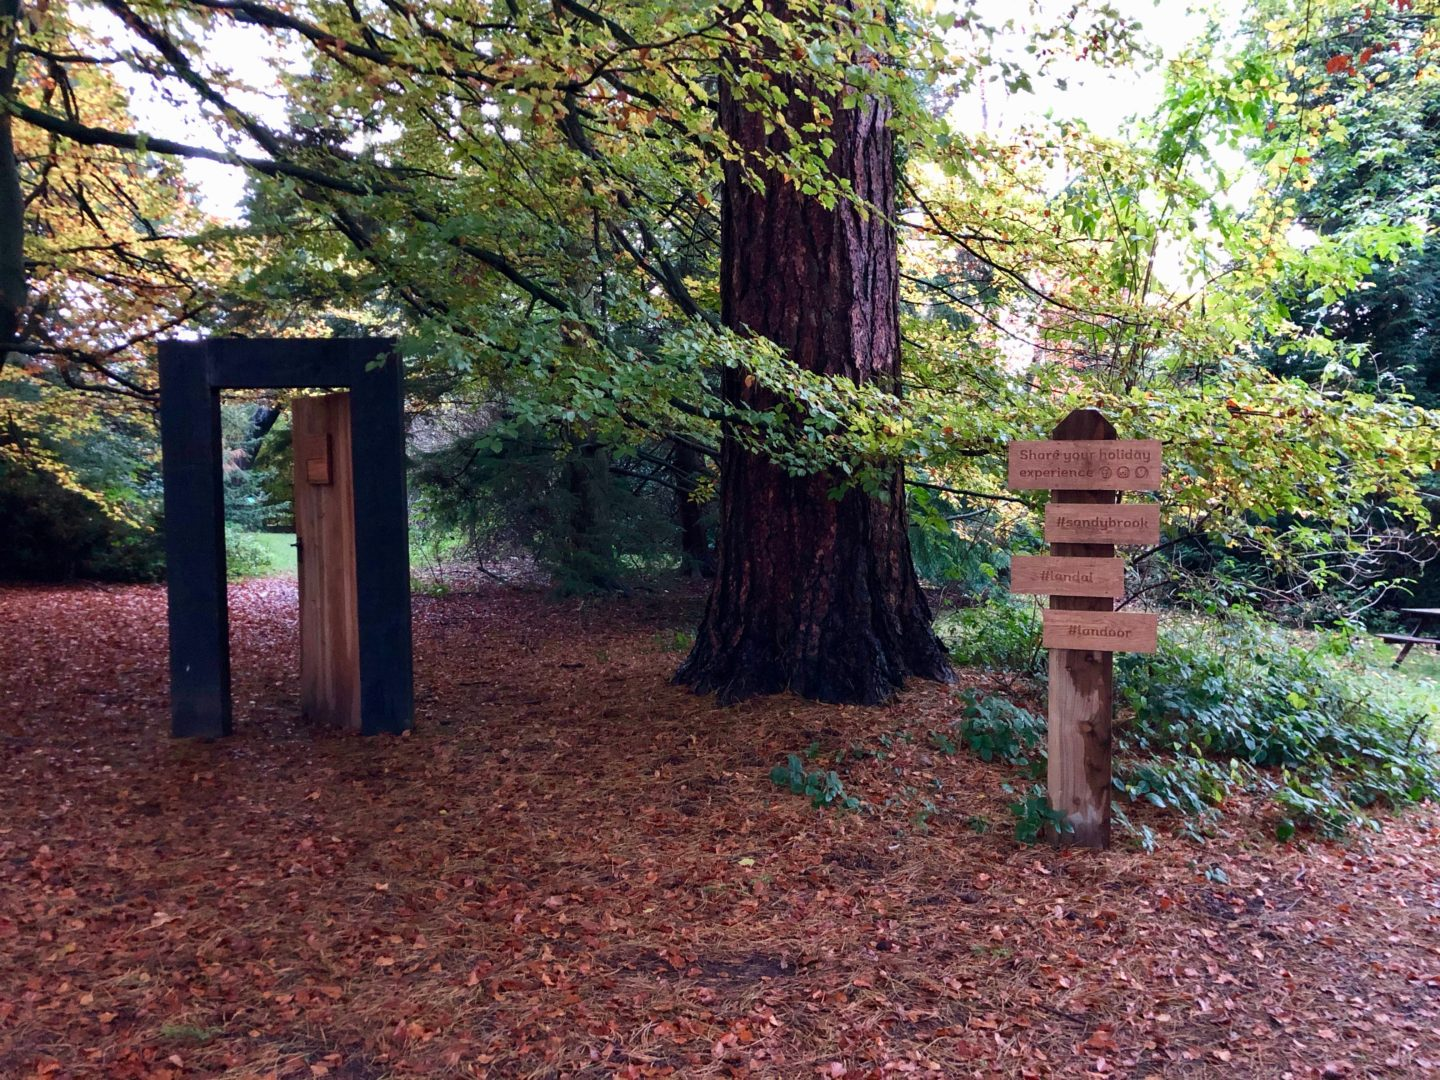 AD: Landal Sandybrook Peak District family review - a relaxing autumnal long weekend break. The woodland walk at Landal Sandybrook, Peak District.